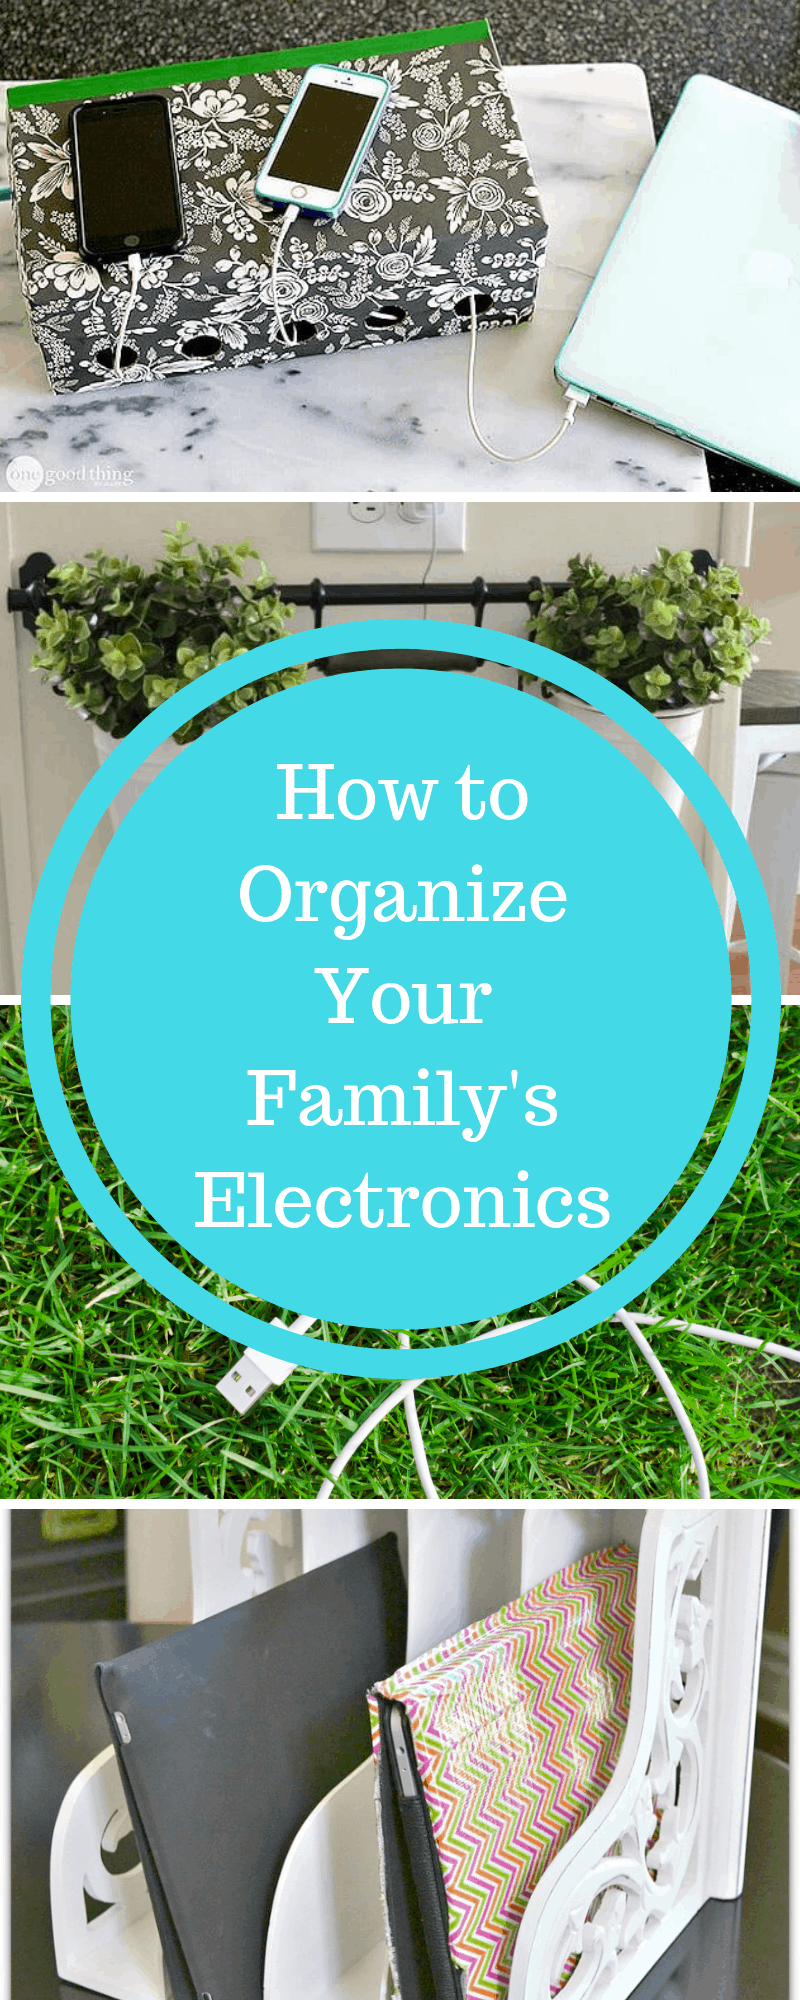 How to Organize Your Family's Electronics